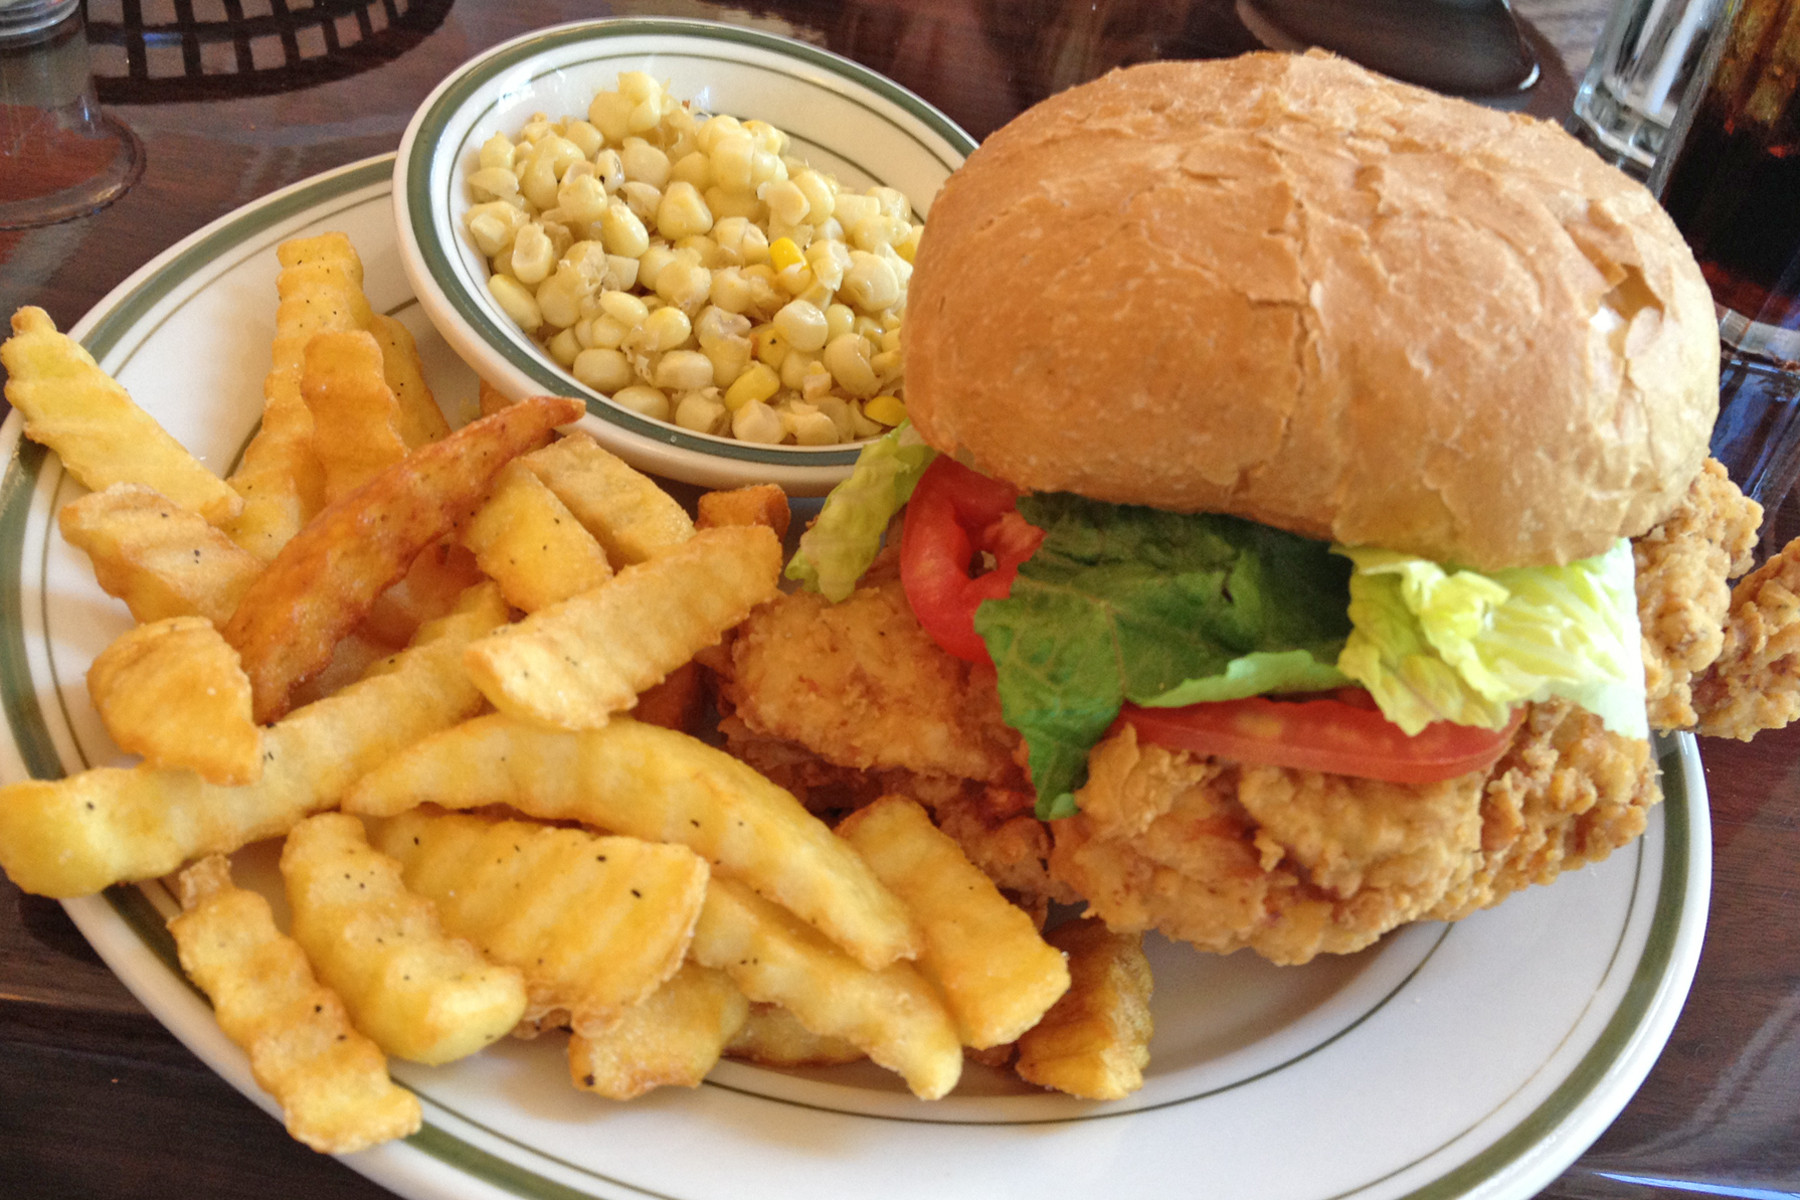 The juicy, tender fried chicken on a Kaiser roll with lettuce, tomato and mayonnaise can be ordered with knife-cut corn and crinkle-cut fries.